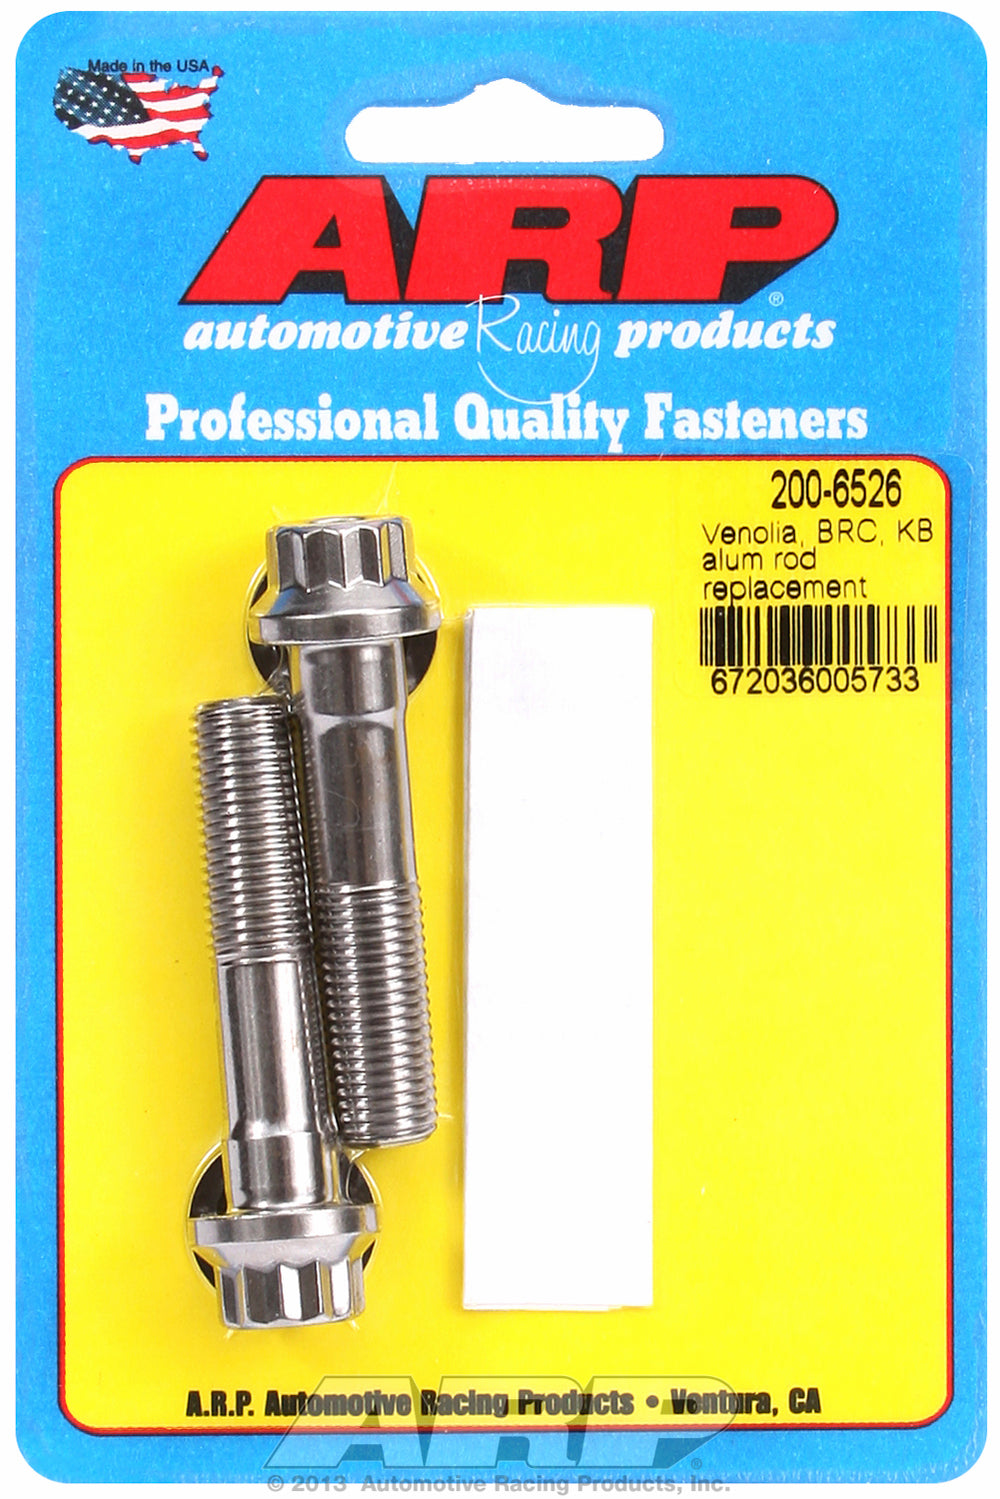 L19 General Replacement Rod Bolt Kit 2-pc Aluminum Rod Replacement